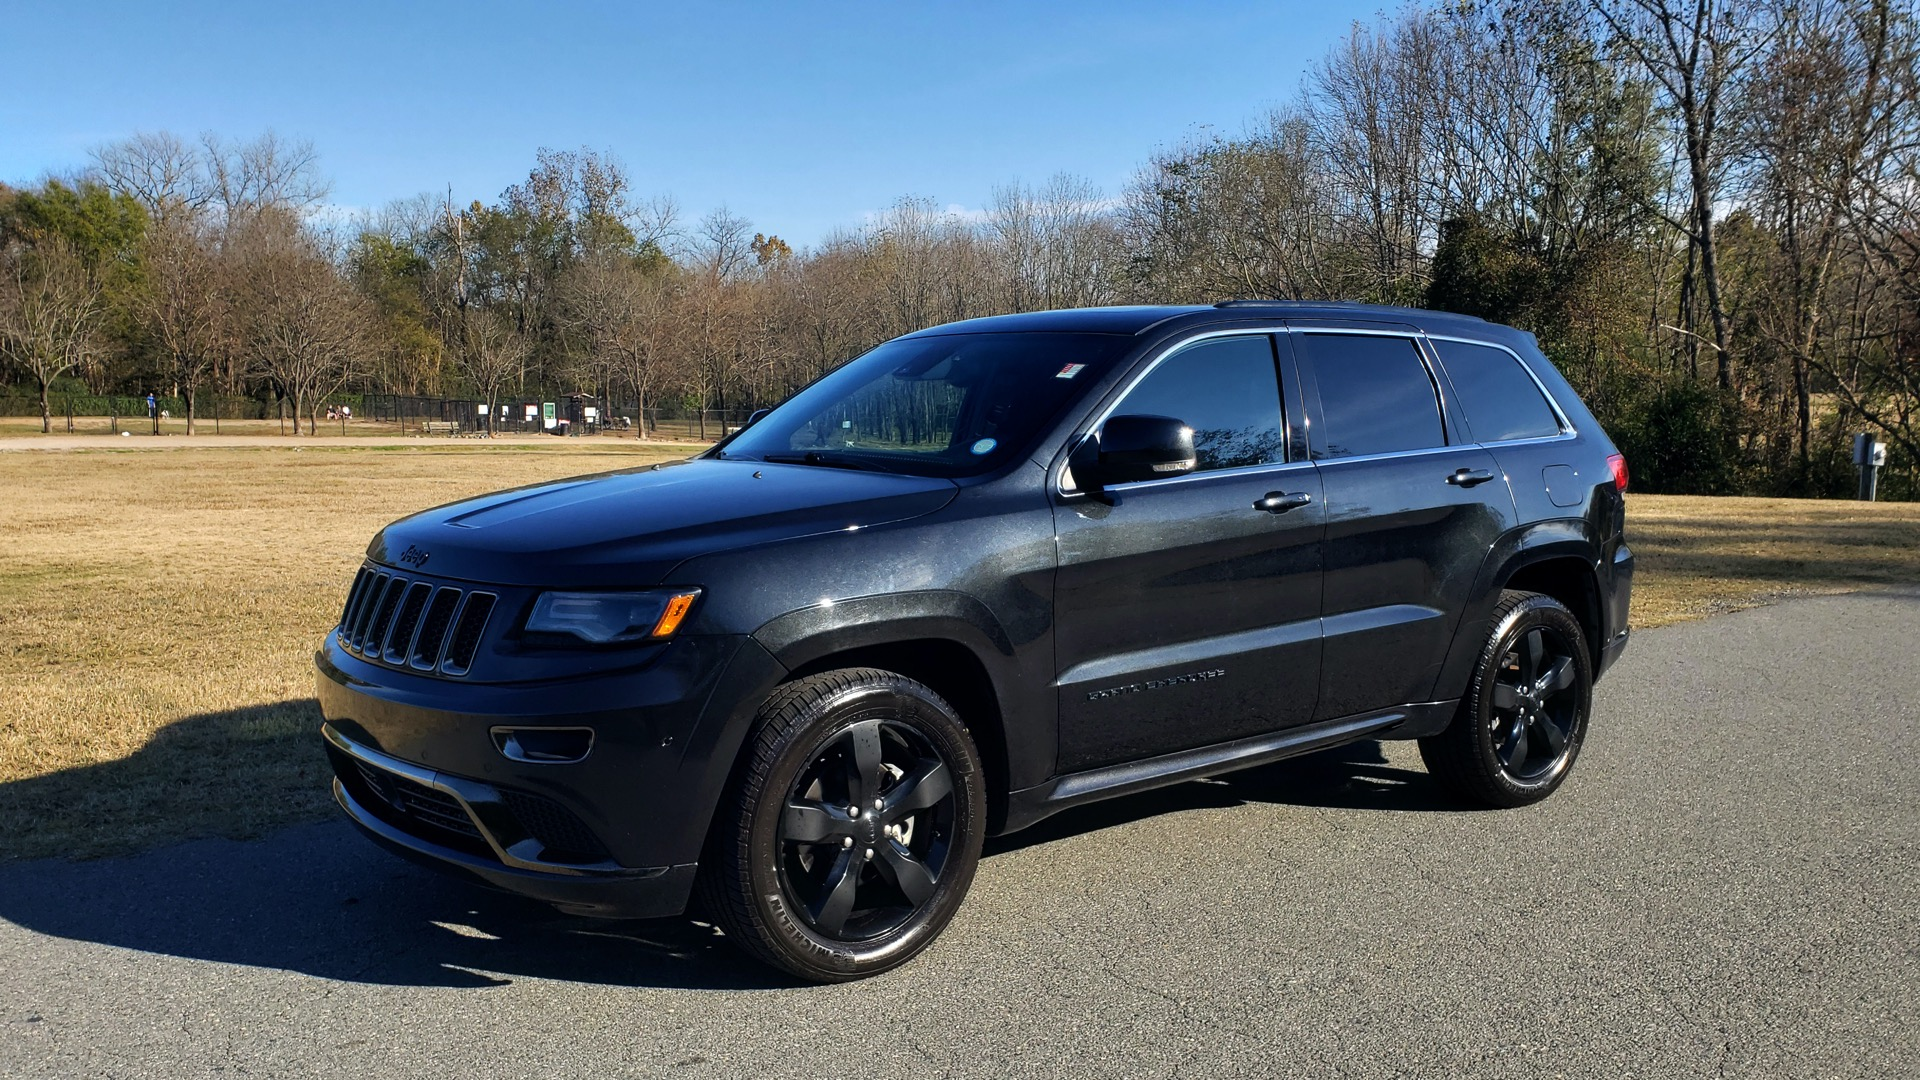 Used 2015 Jeep GRAND CHEROKEE HIGH ALTITUDE / NAV / SUNROOF / REARVIEW / TOW PKG for sale Sold at Formula Imports in Charlotte NC 28227 1